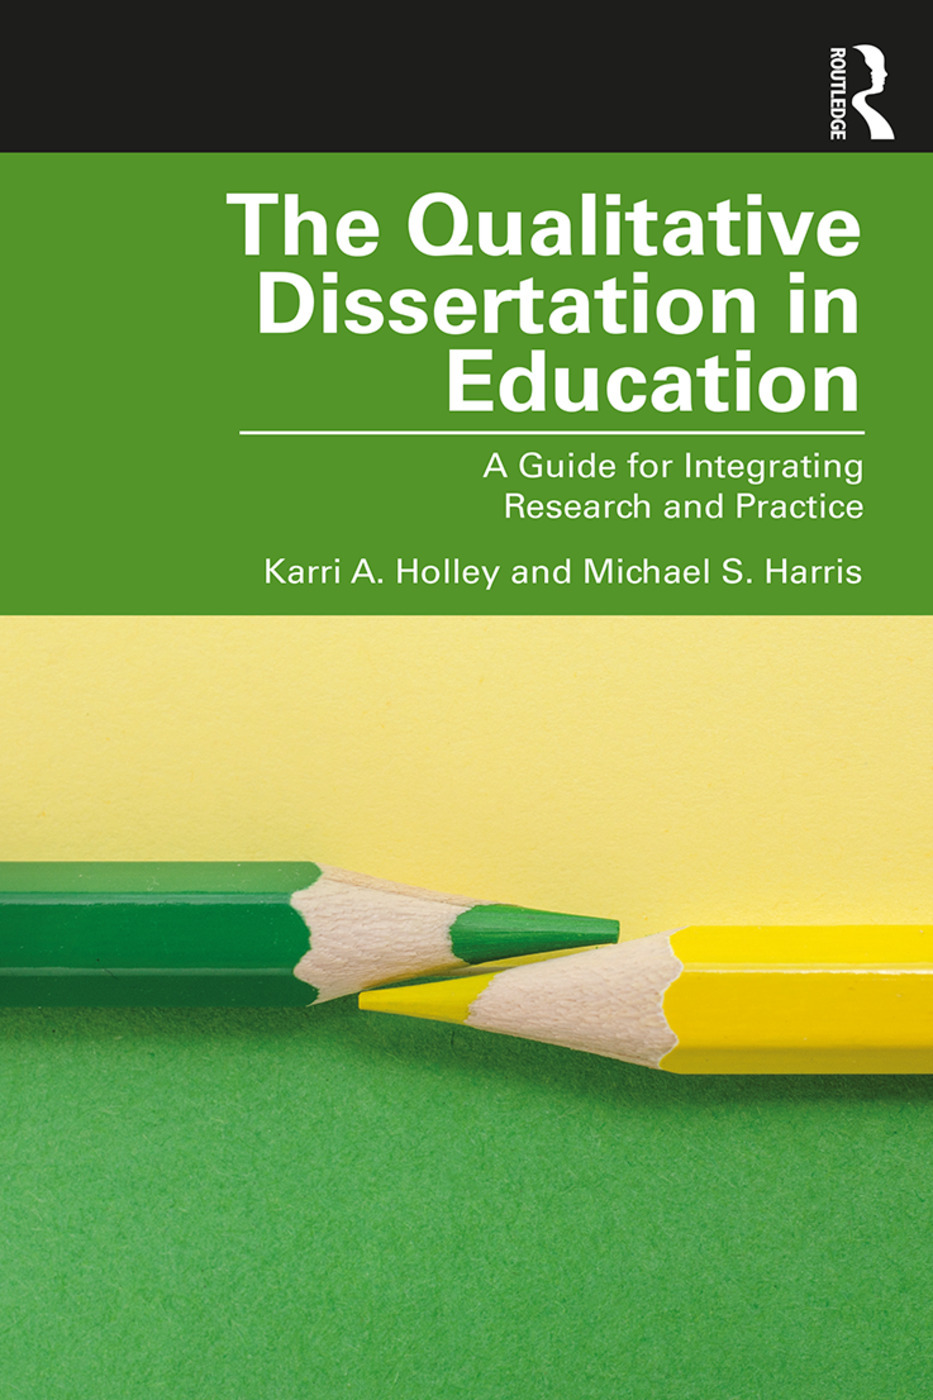 Research dissertation creative writing resources